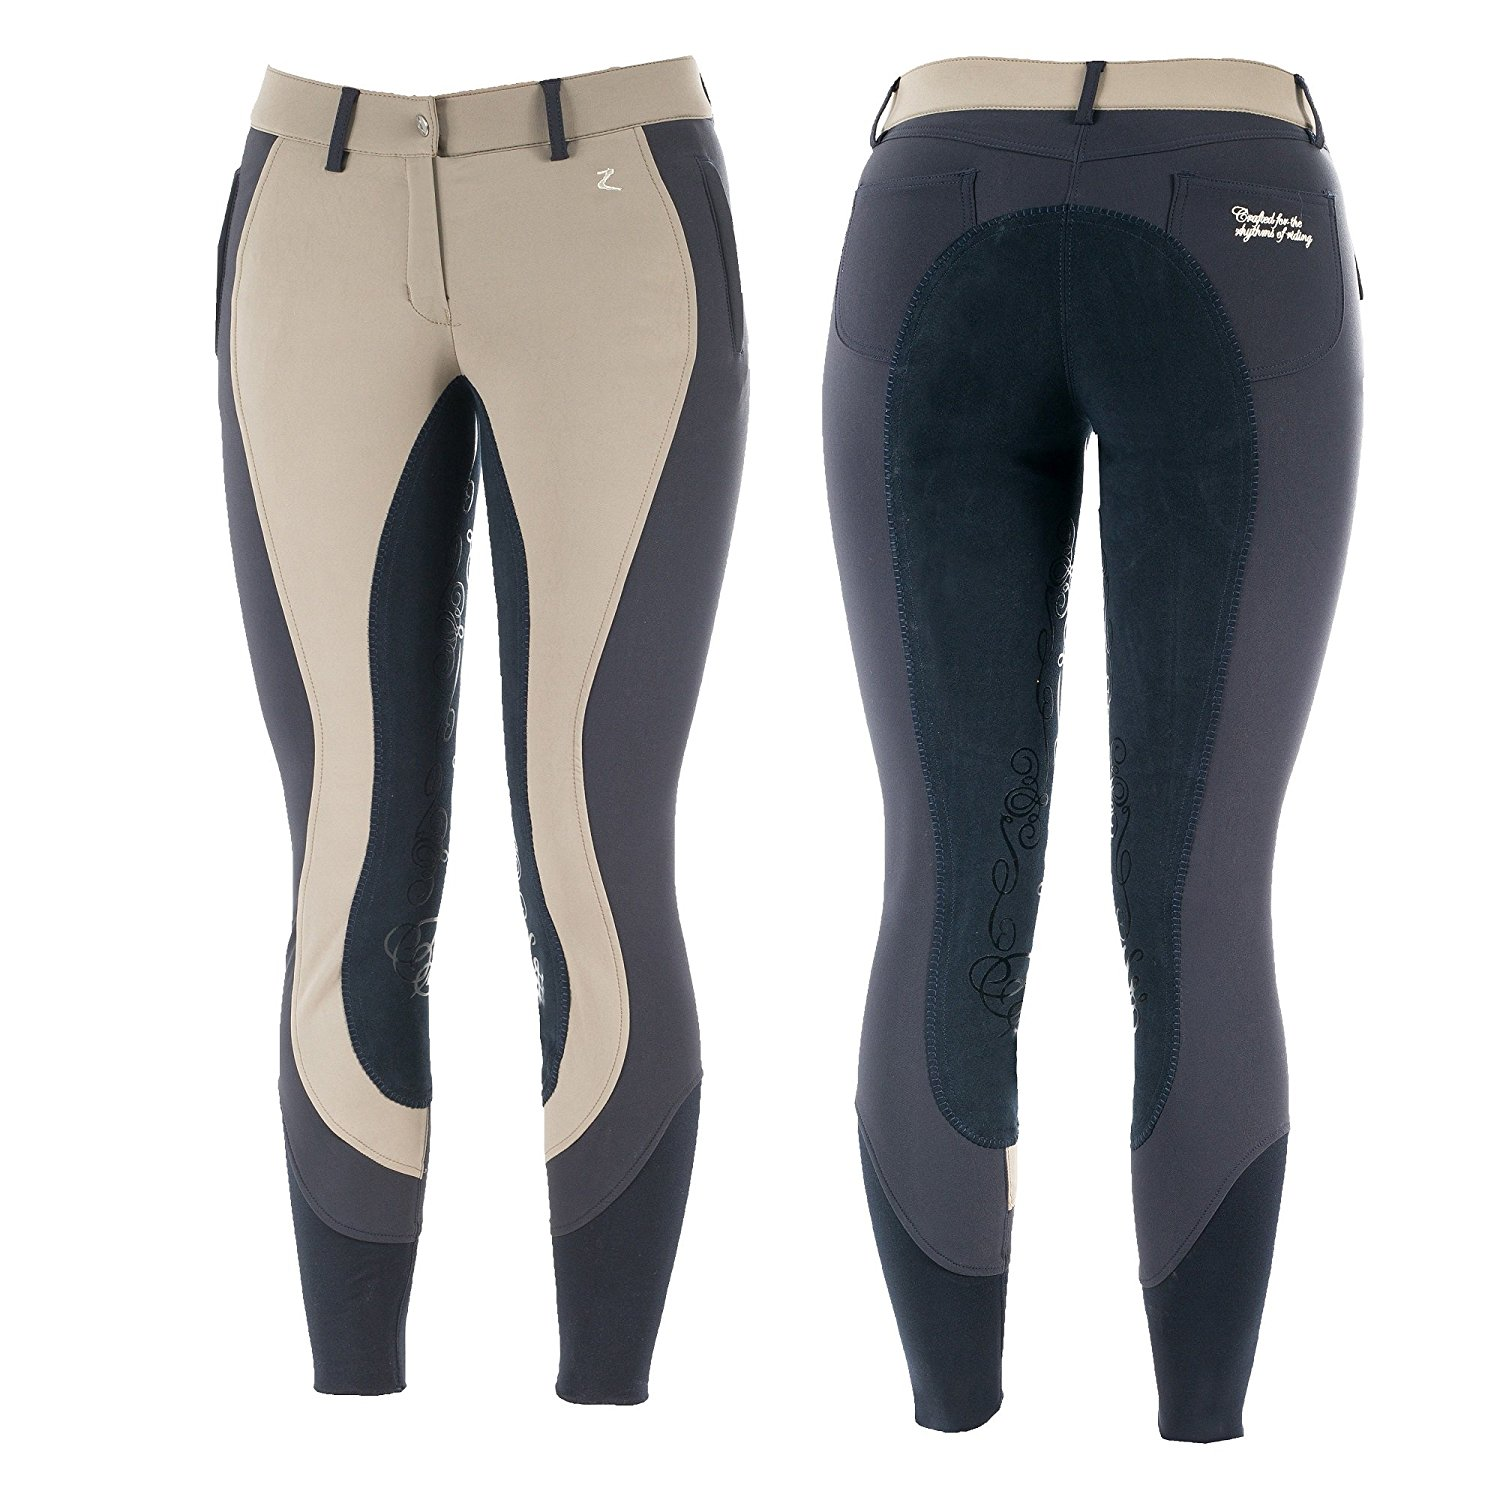 Horze Kiana Extra Breathe Water and Dust Repellent Women's Full Seat Breeches Driftwood Light Grey/Peacoat Dark Blue 24